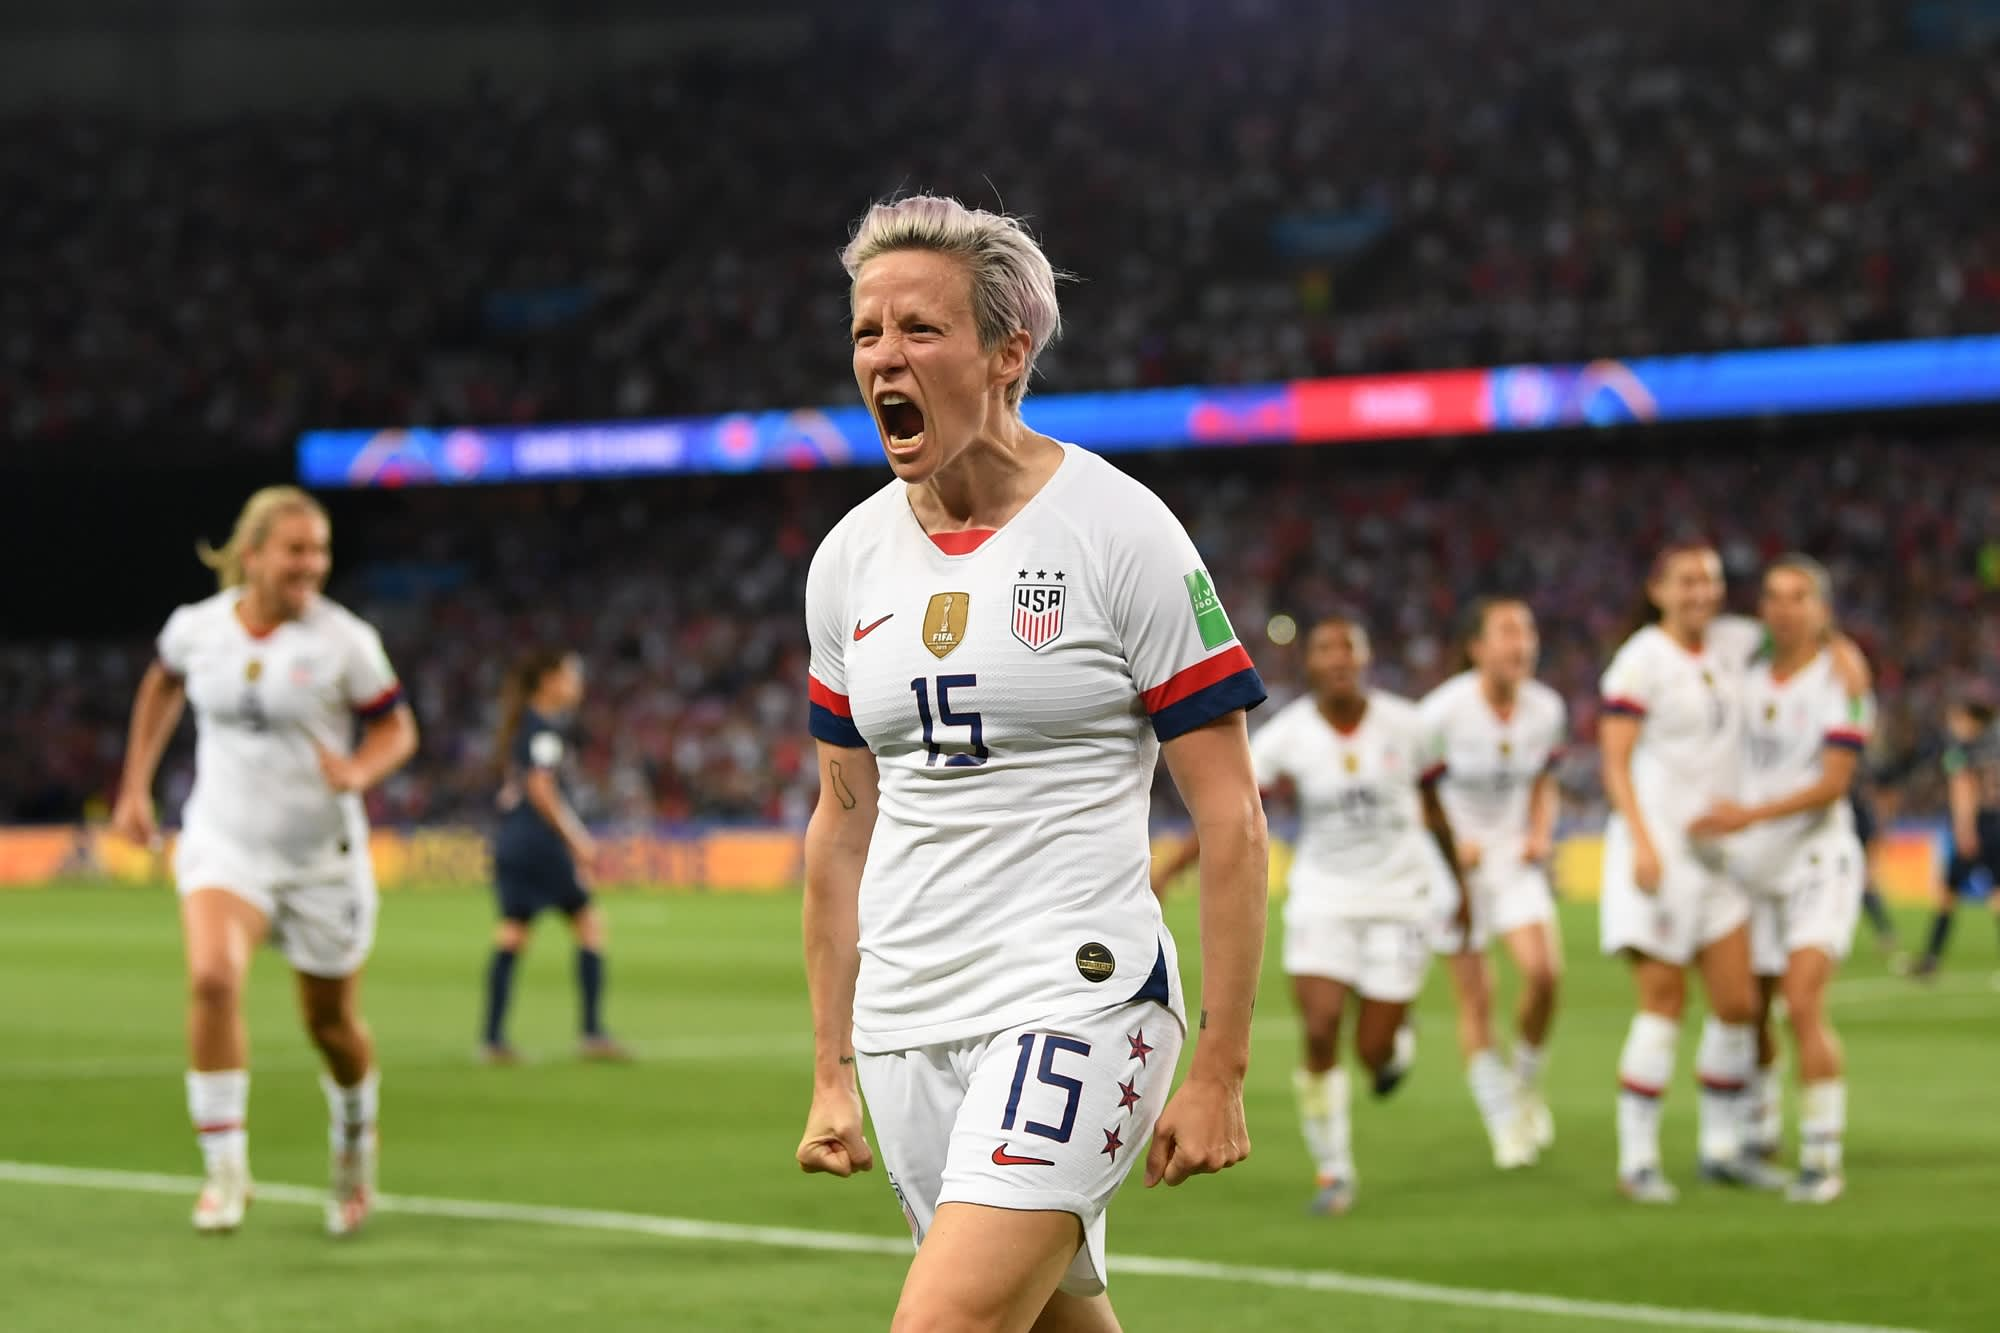 Meet the members of the U.S. soccer team for 2019 Womens